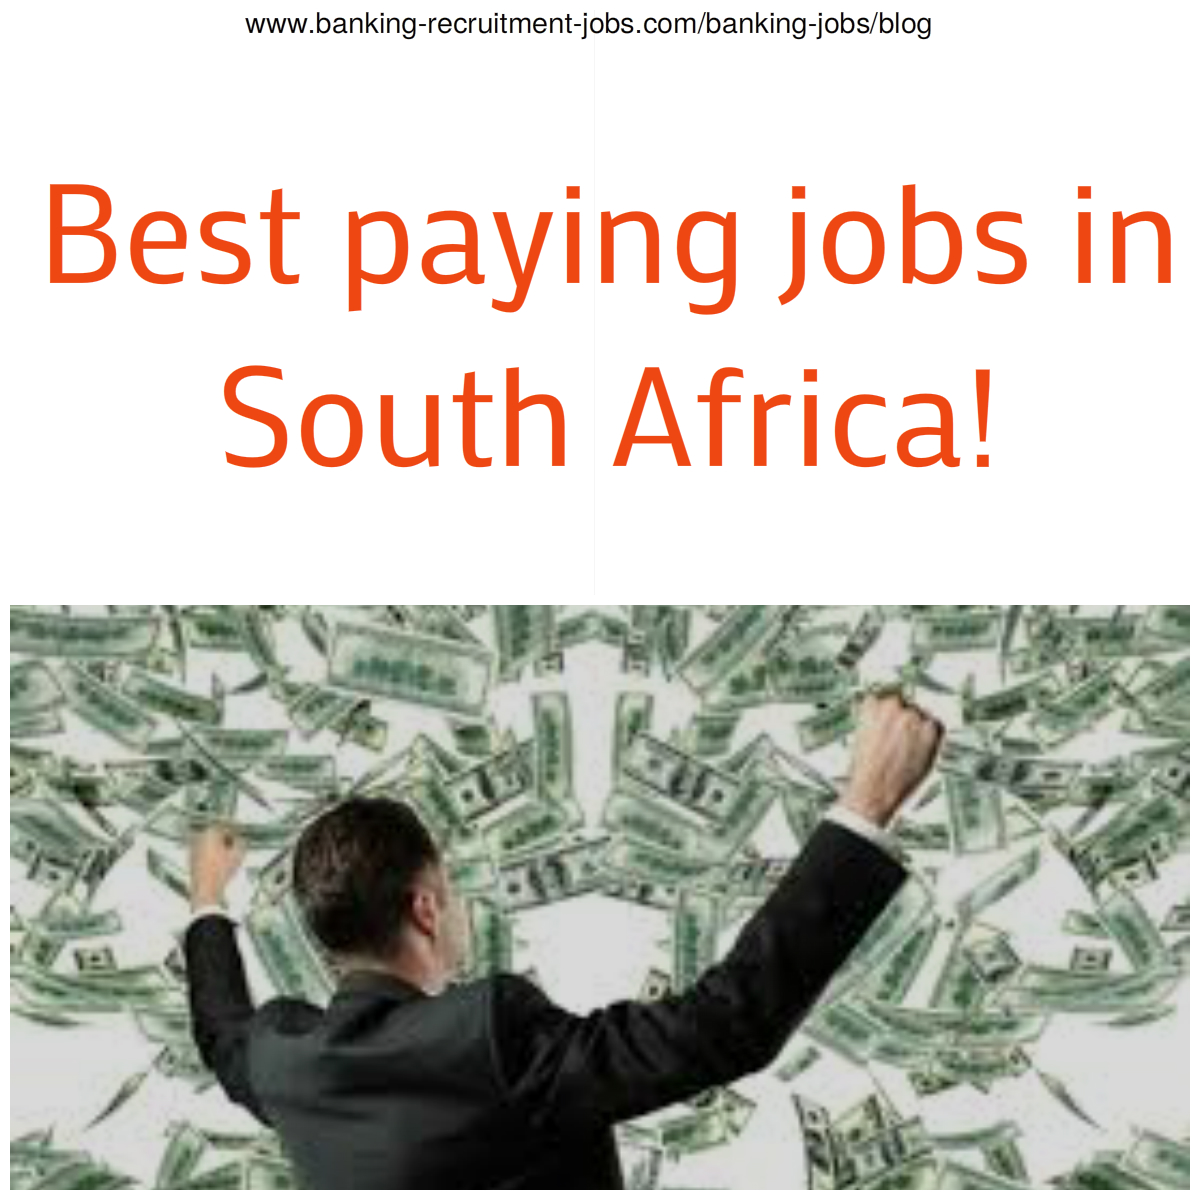 Banking Jobs in Africa